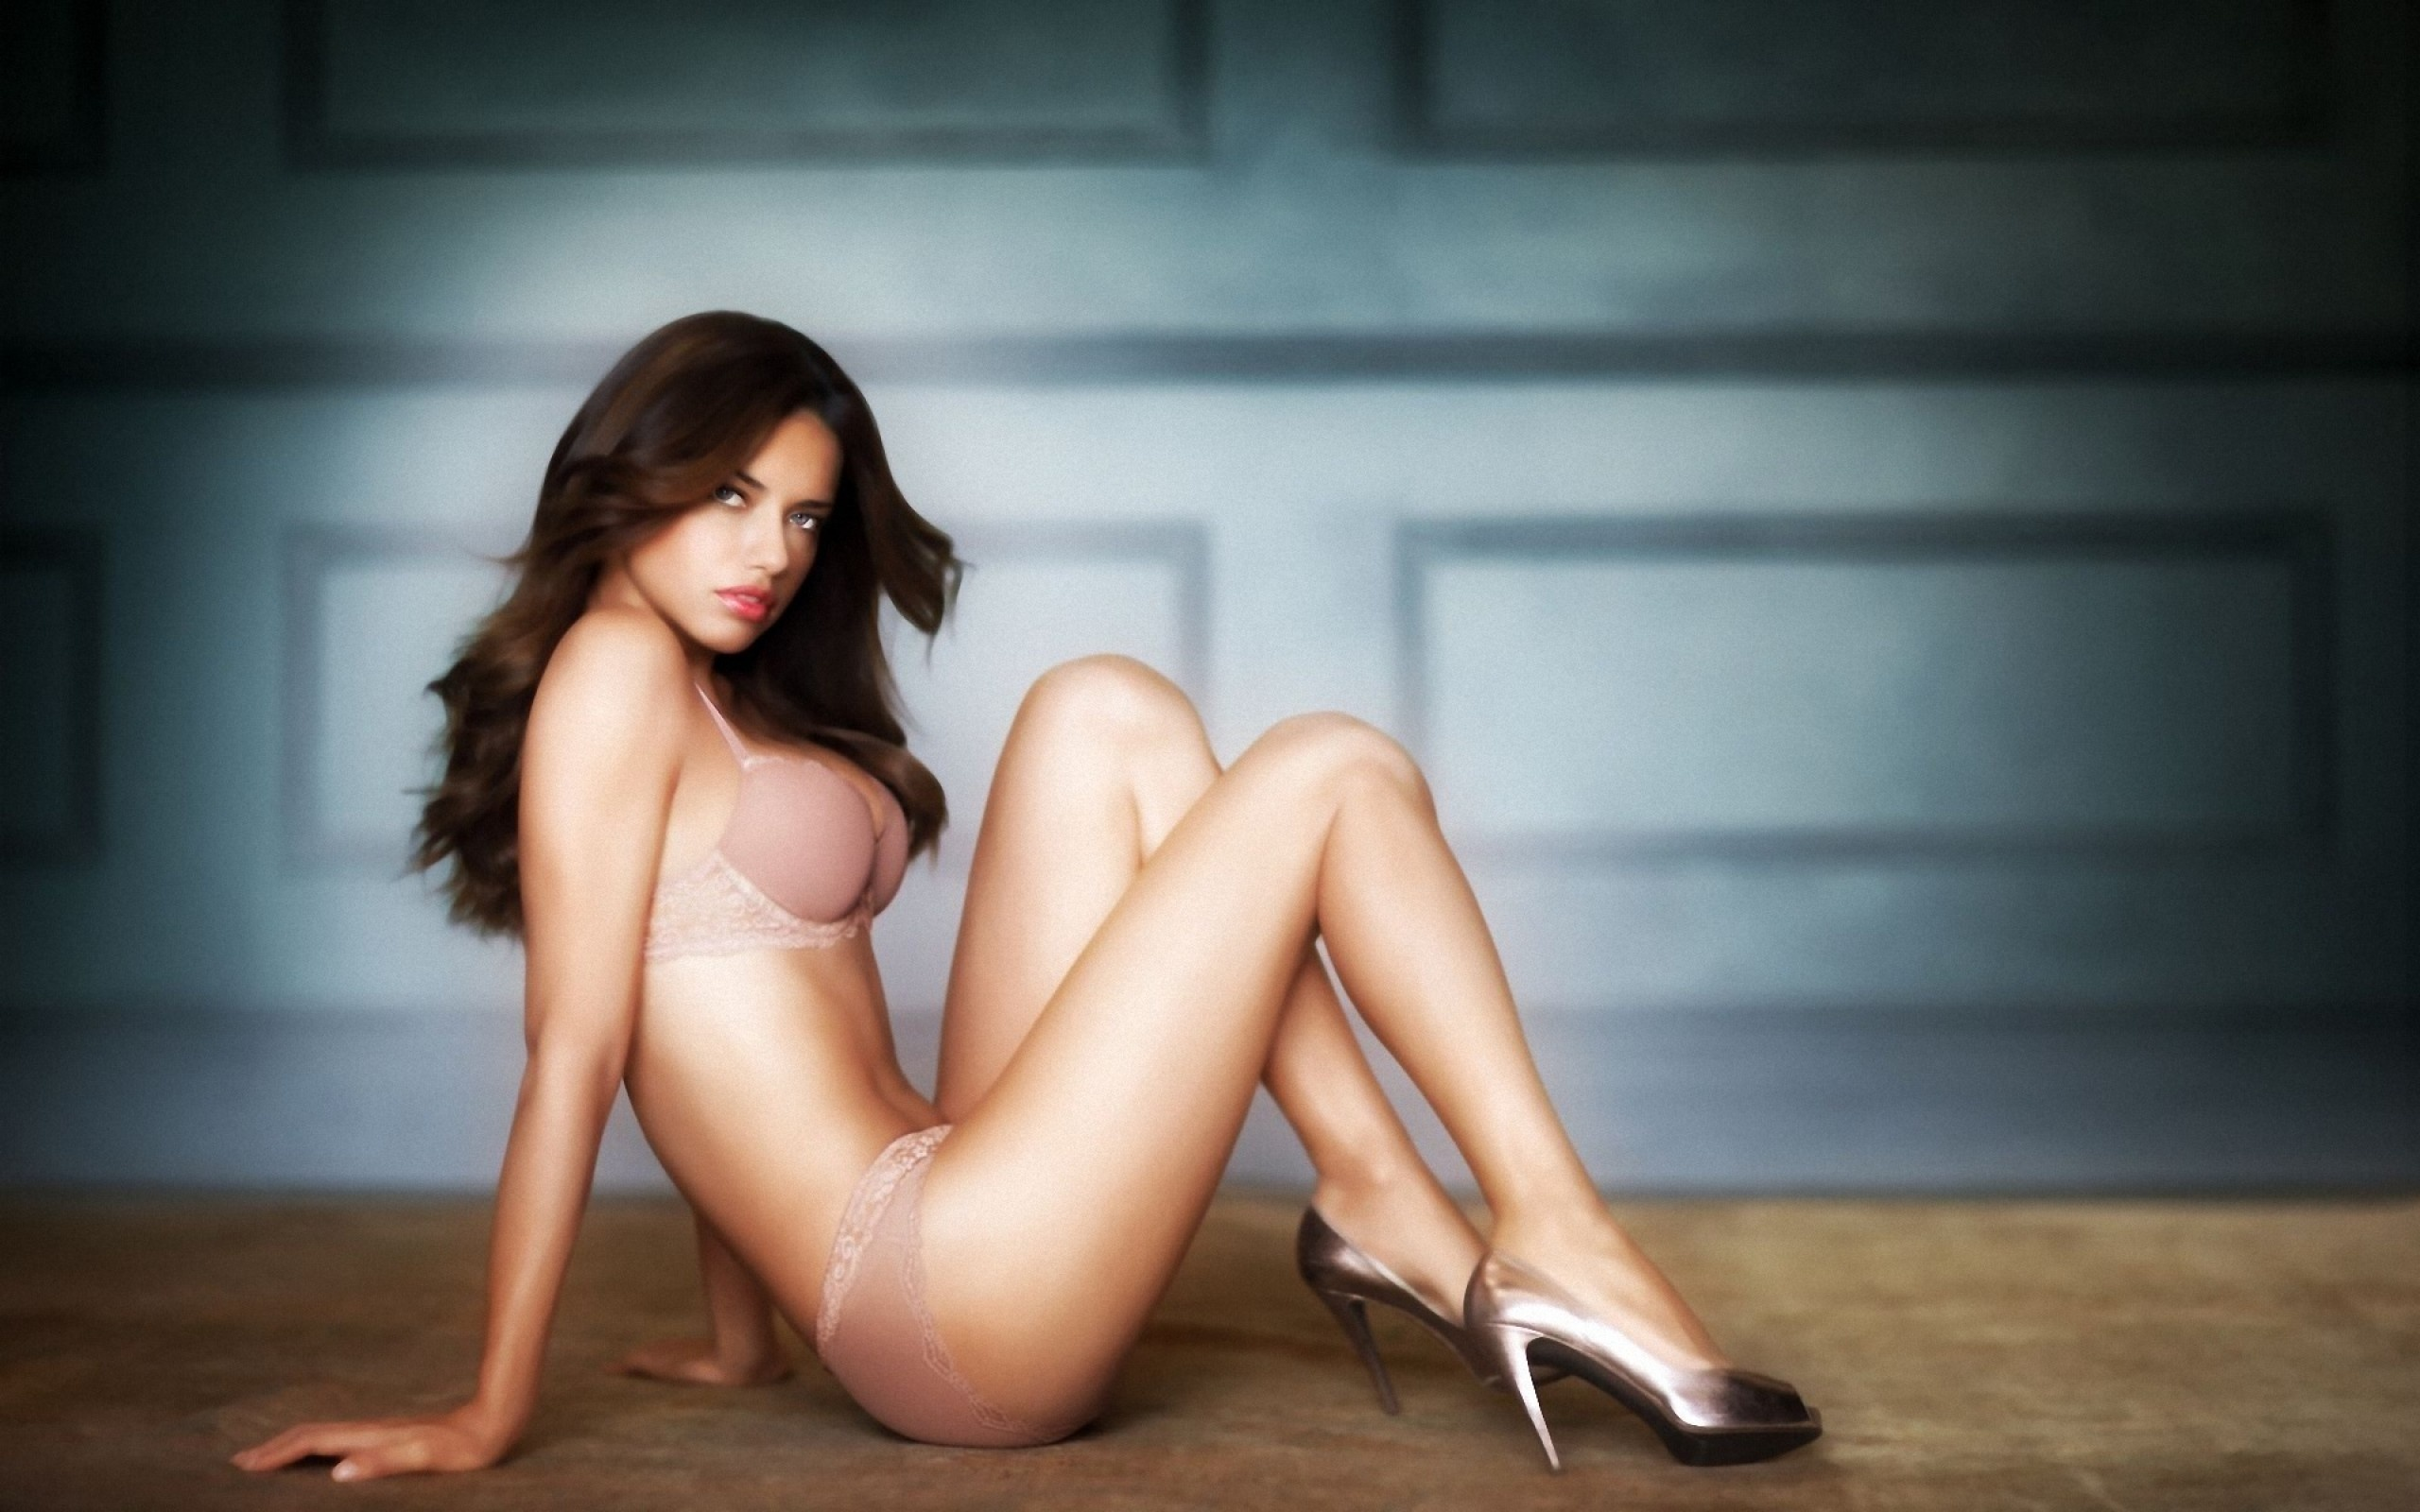 Dark haired milf Lucey Perez is enjoying her posing action № 836669 загрузить